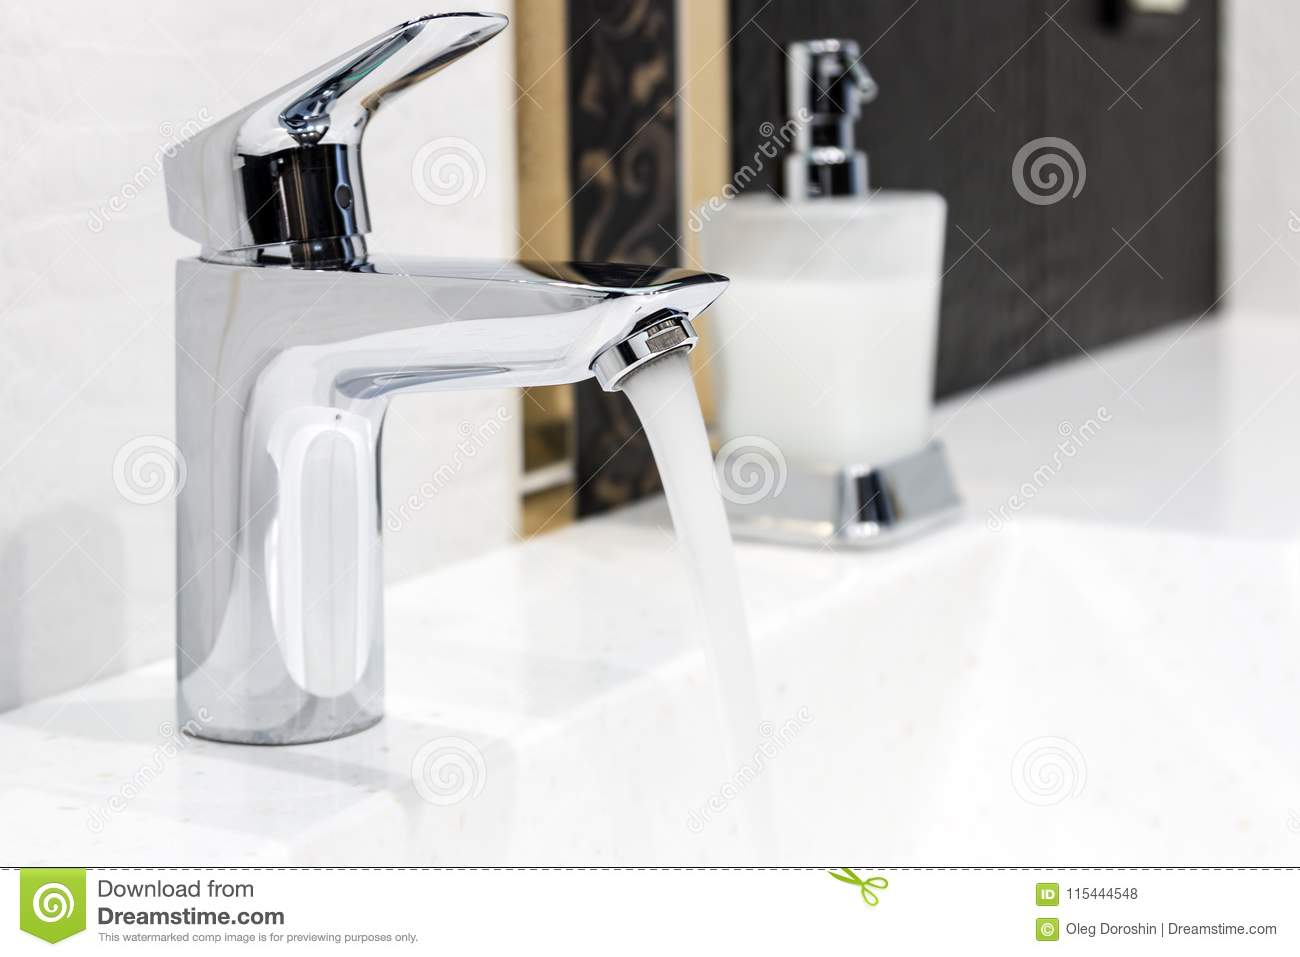 Water Faucet In The Bathroom Or Toilet Stock Photo - Image of ...